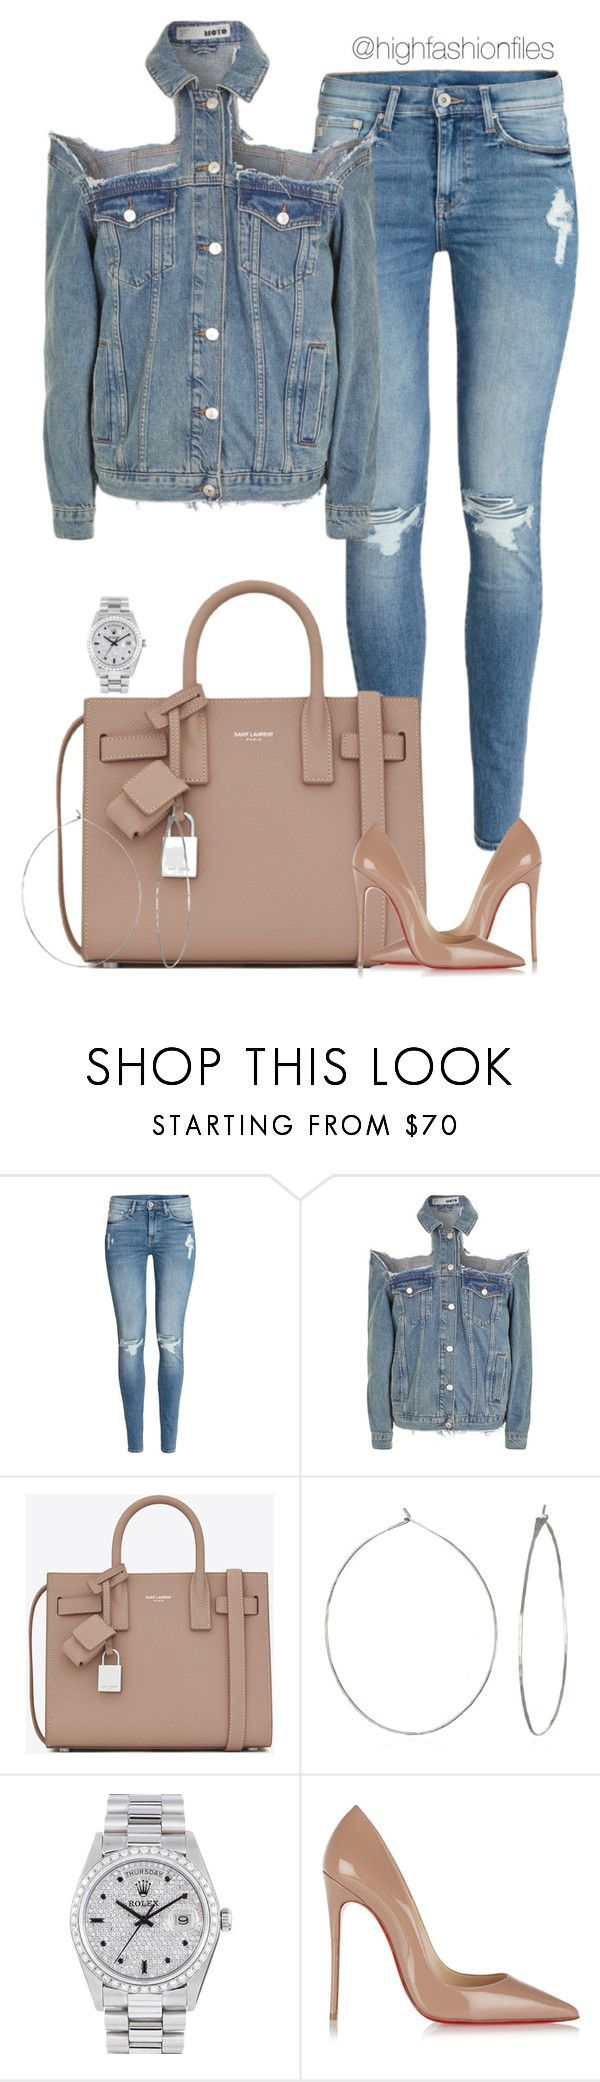 """""""Untitled #2708"""" by highfashionfiles ❤ liked on Polyvore featuring H&M, Topshop, Yves Saint Laurent, Phyllis + Rosie, Rolex and Christian Louboutin"""